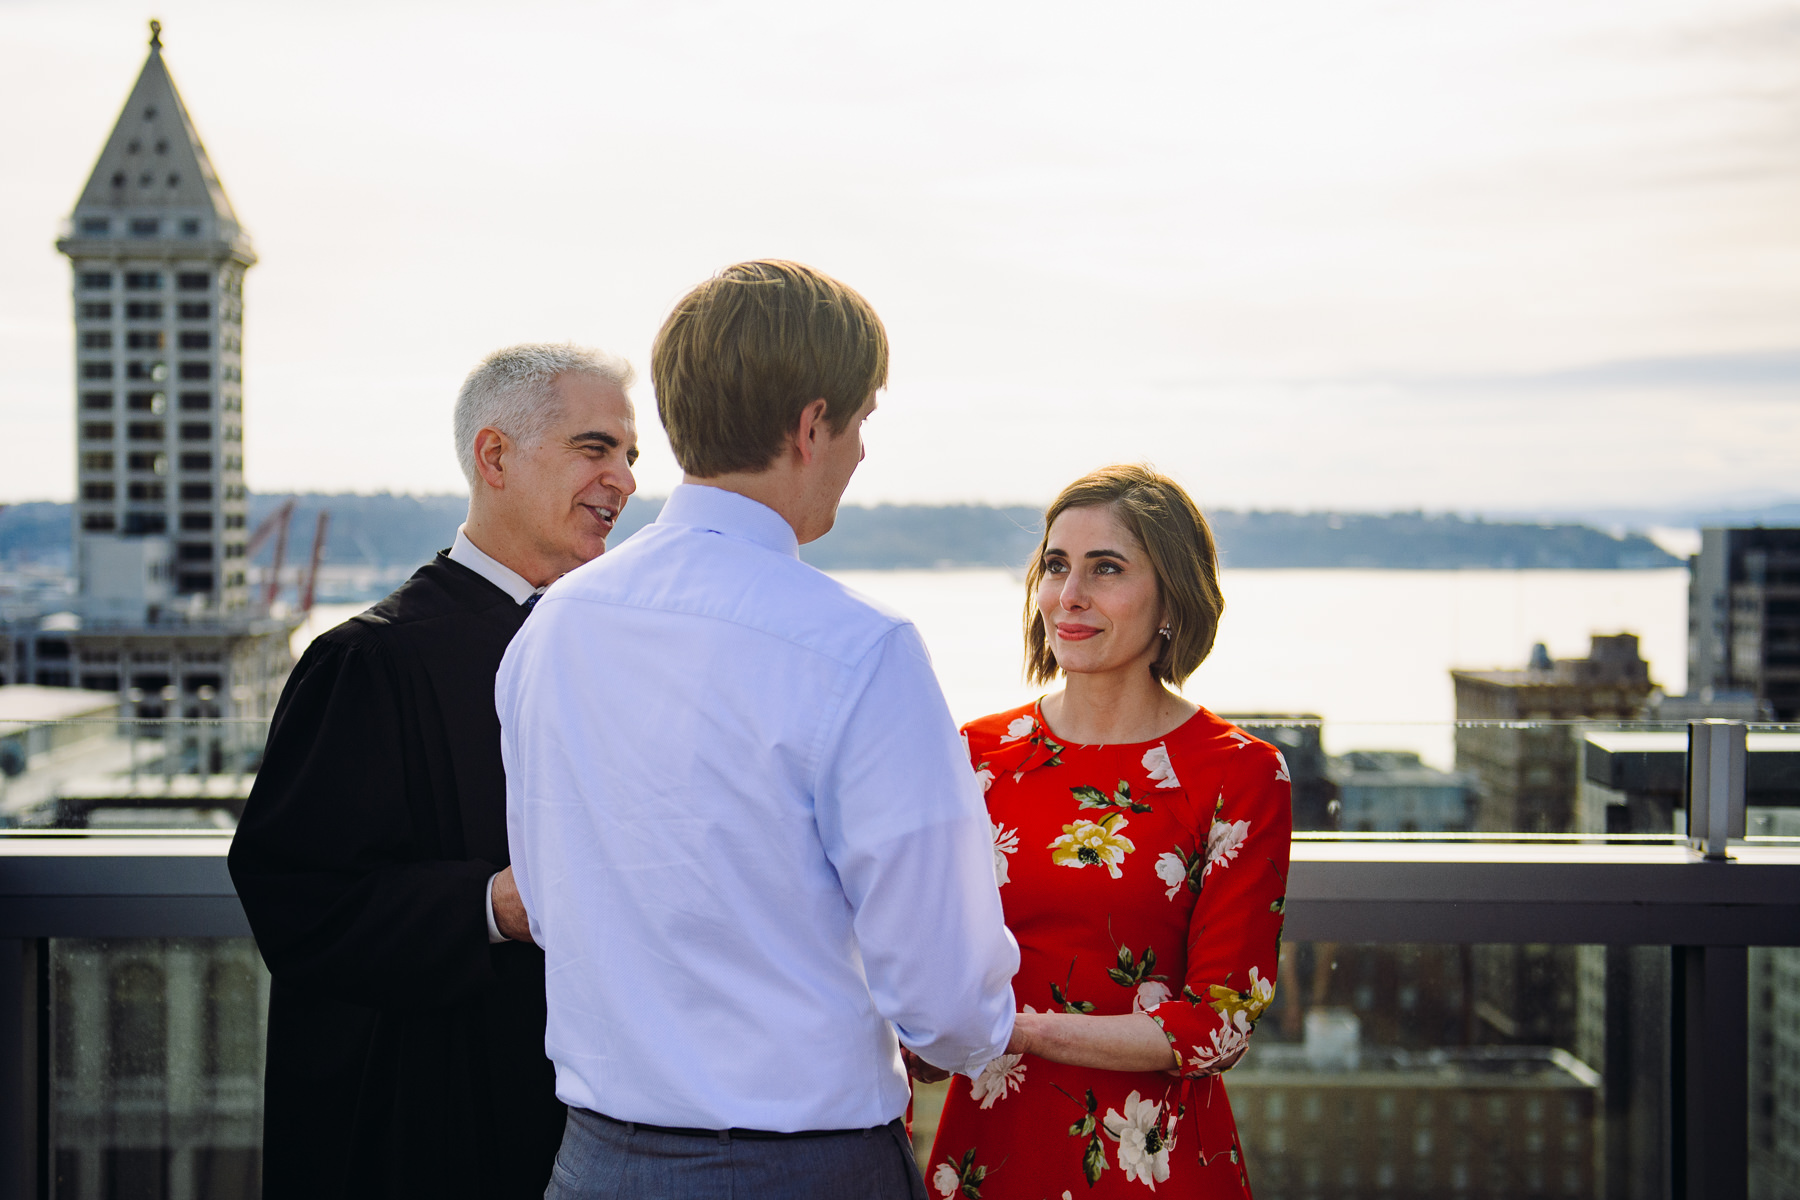 seattle-roof-top-wedding-photo